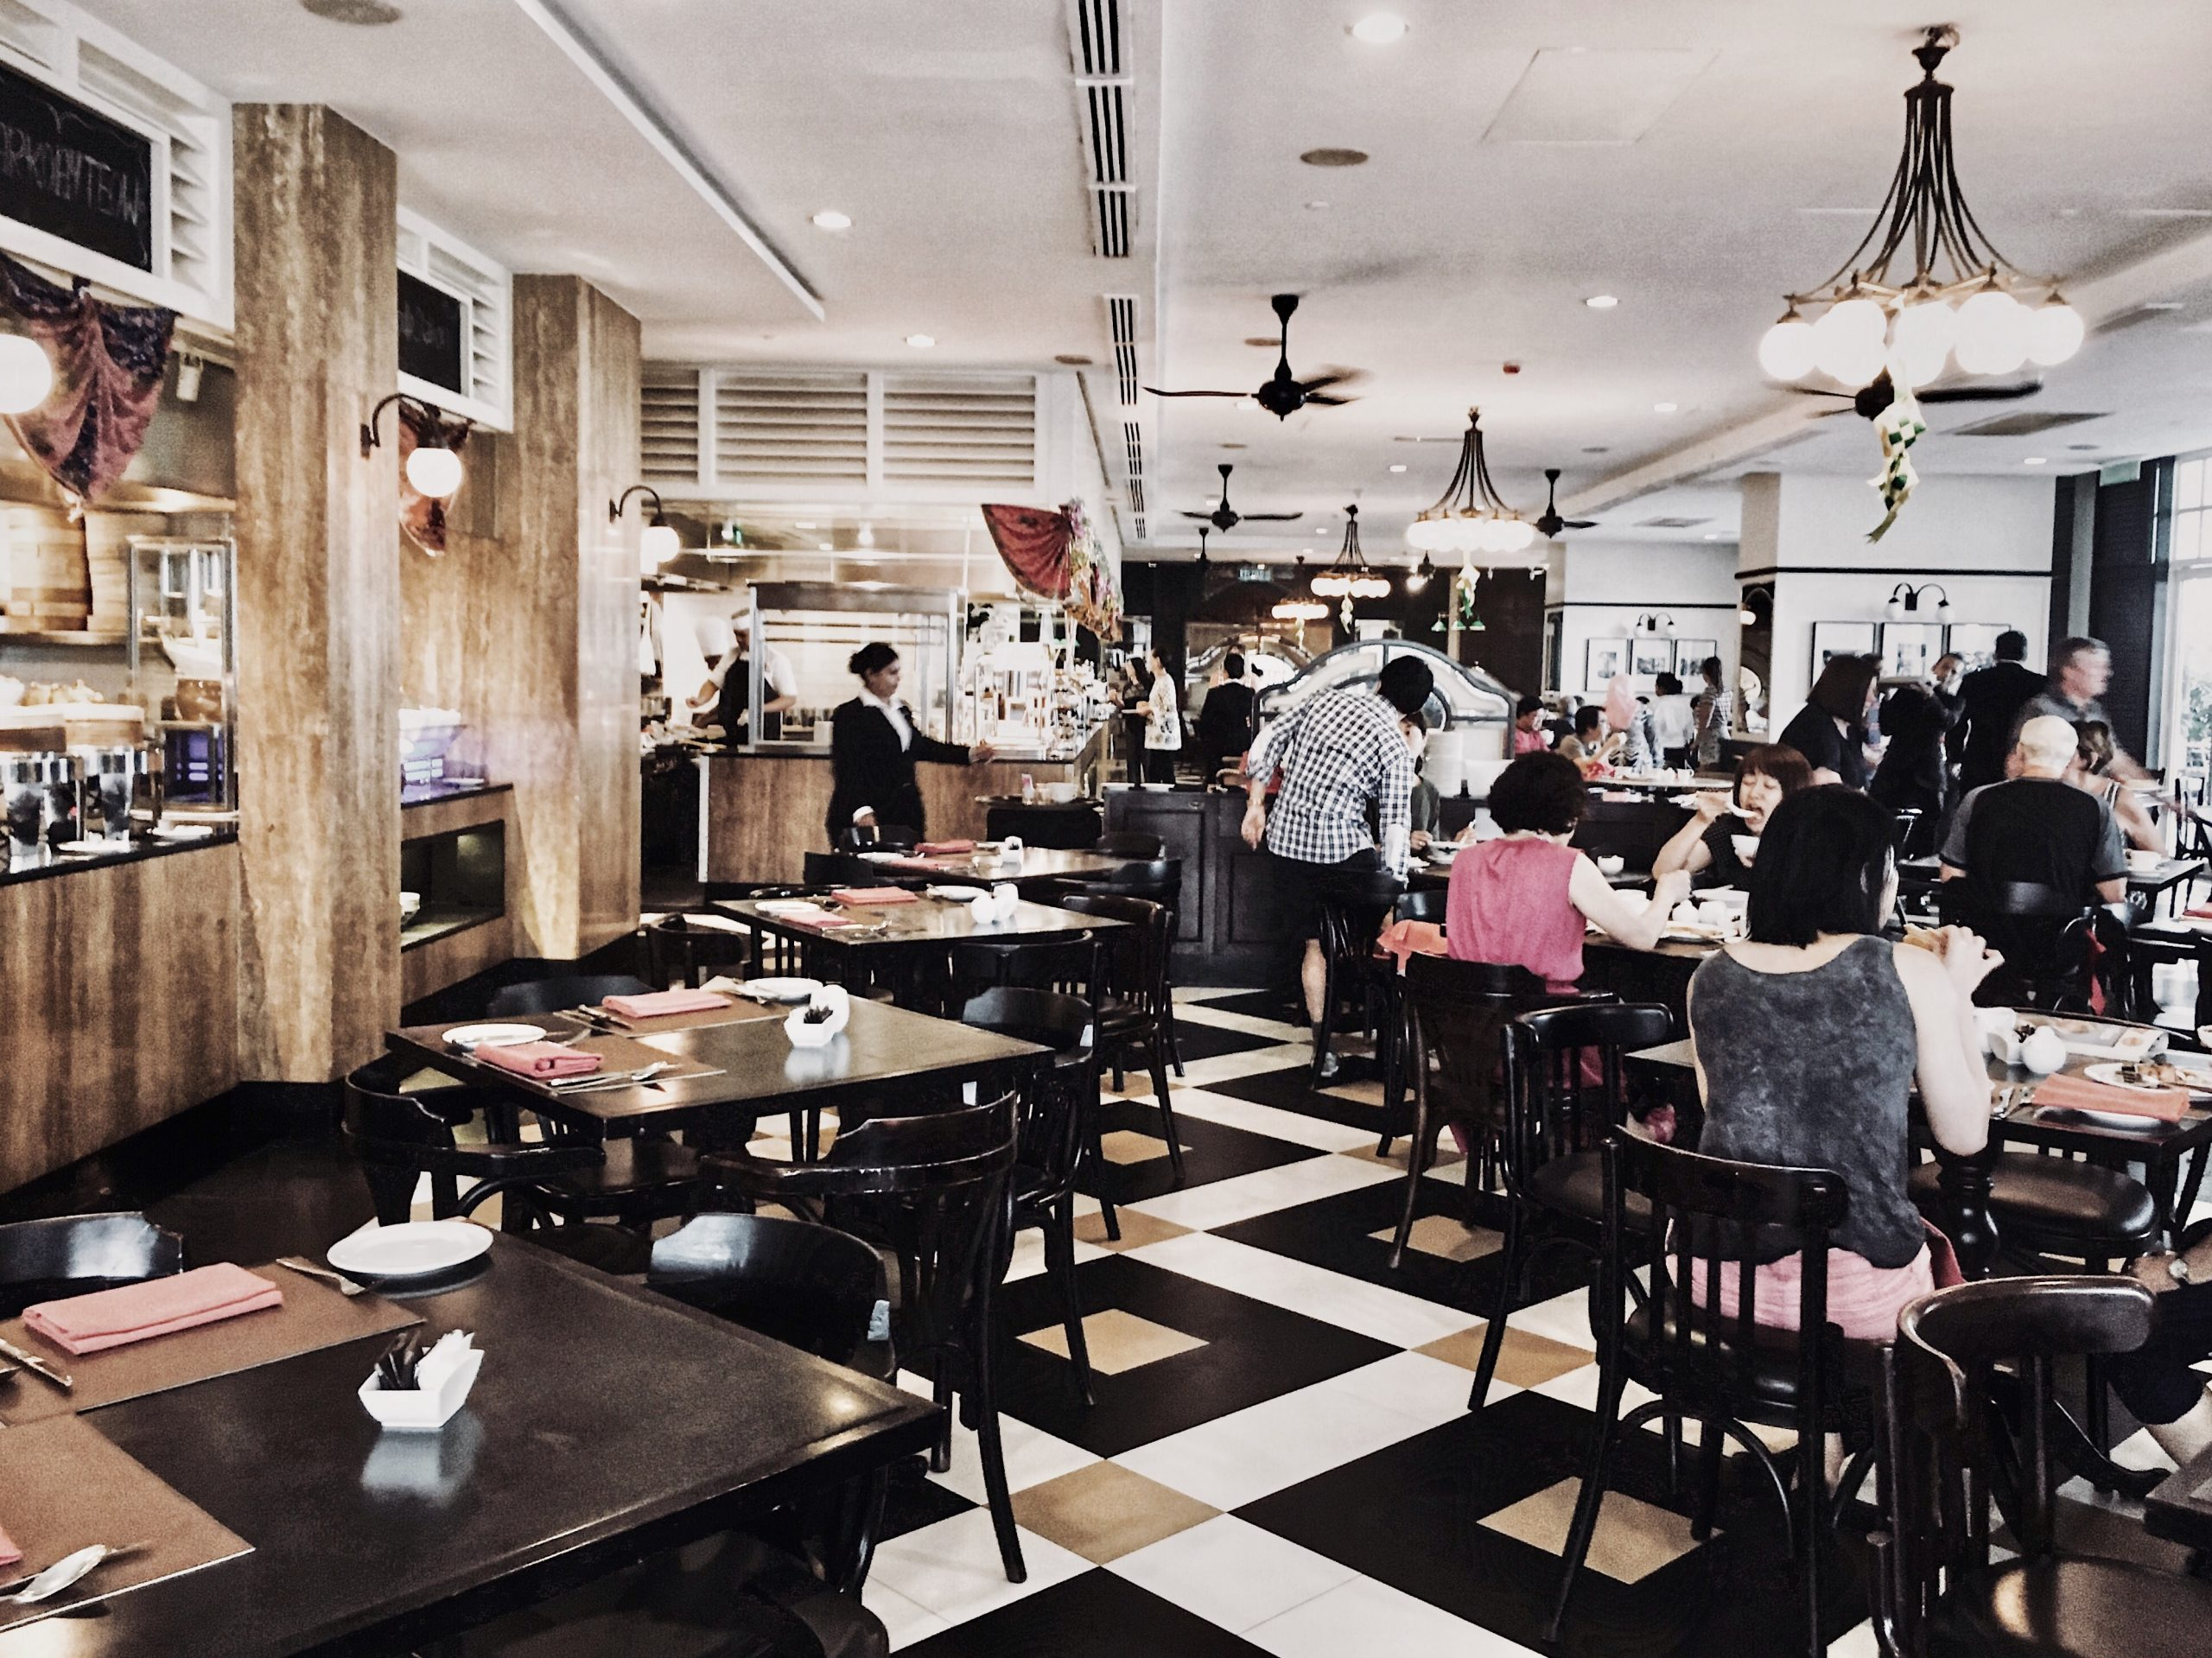 van thanh 1ktlYkBZZF4 unsplash 1 scaled - Mistakes to Avoid when Running a Restaurant